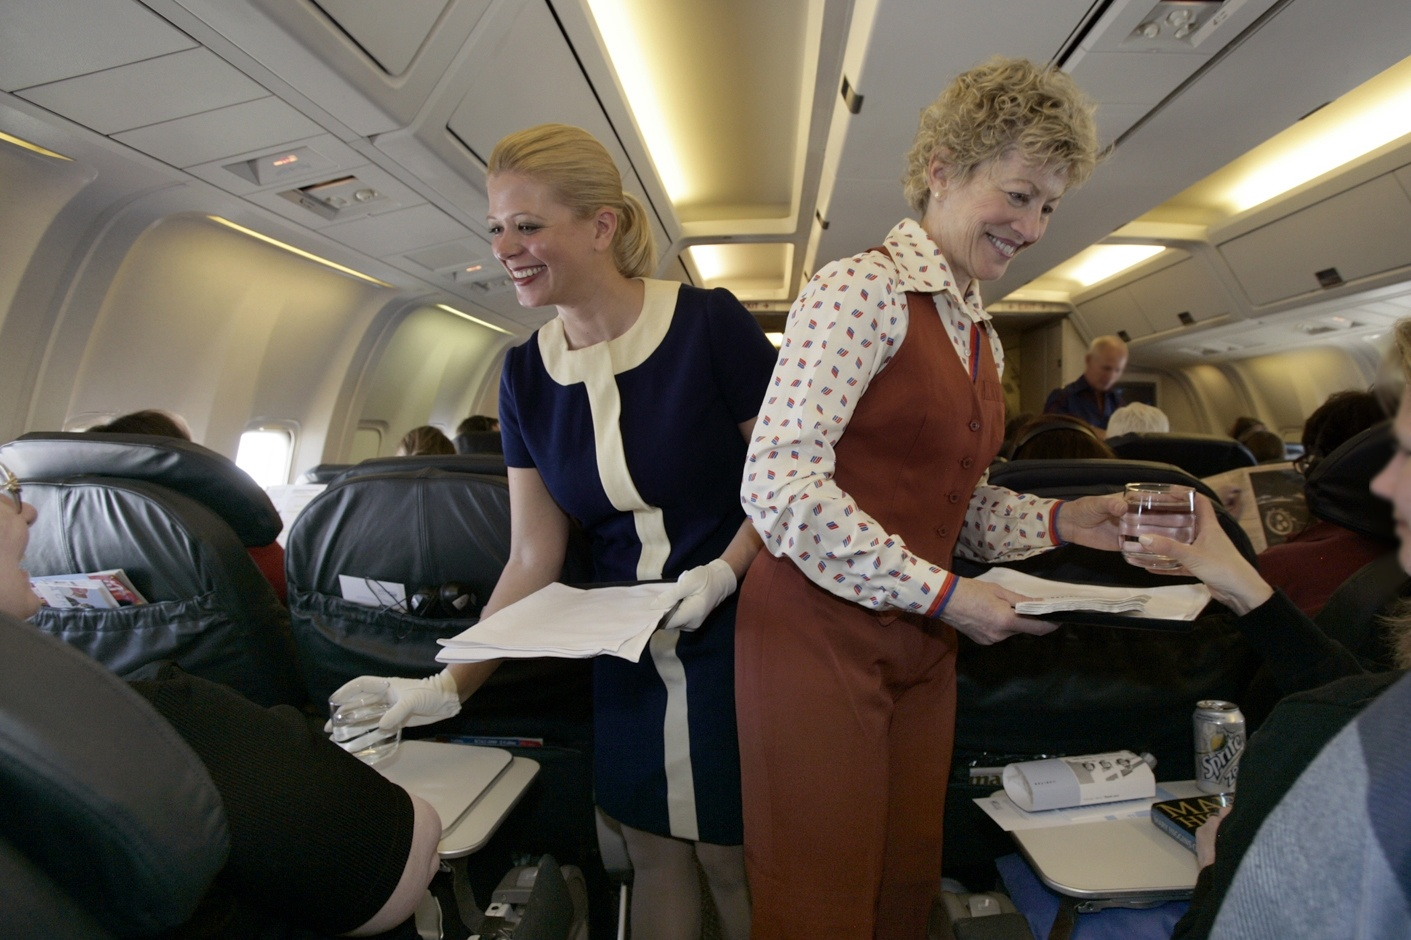 United Airlines Flight Attendant PROMOTIONAL PHOTOGRAPH...